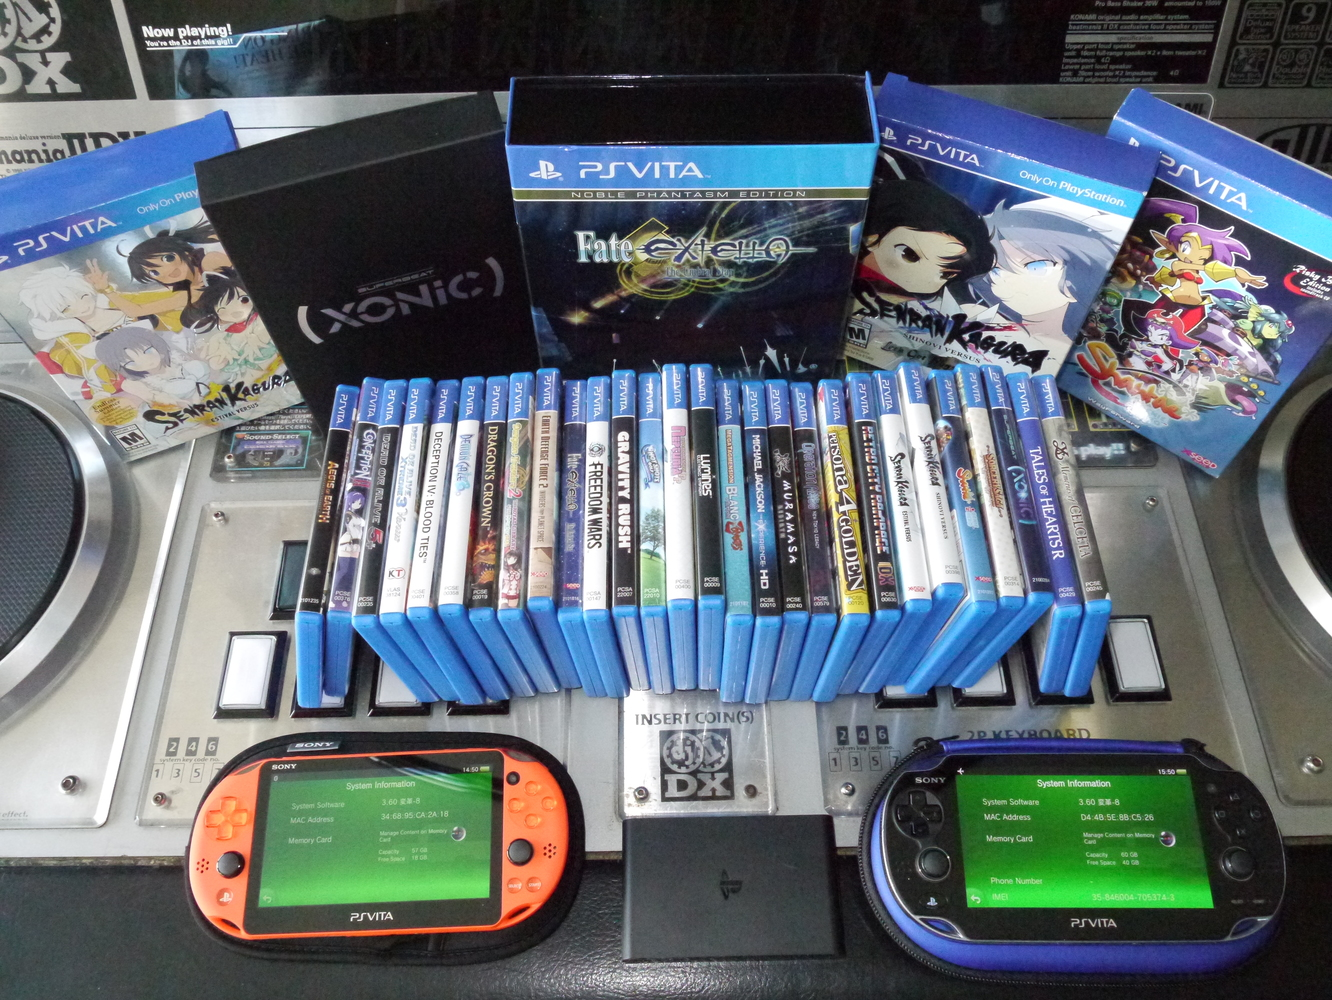 Finished Vita 1000, 2000, and TV displayed with physical Vita game library